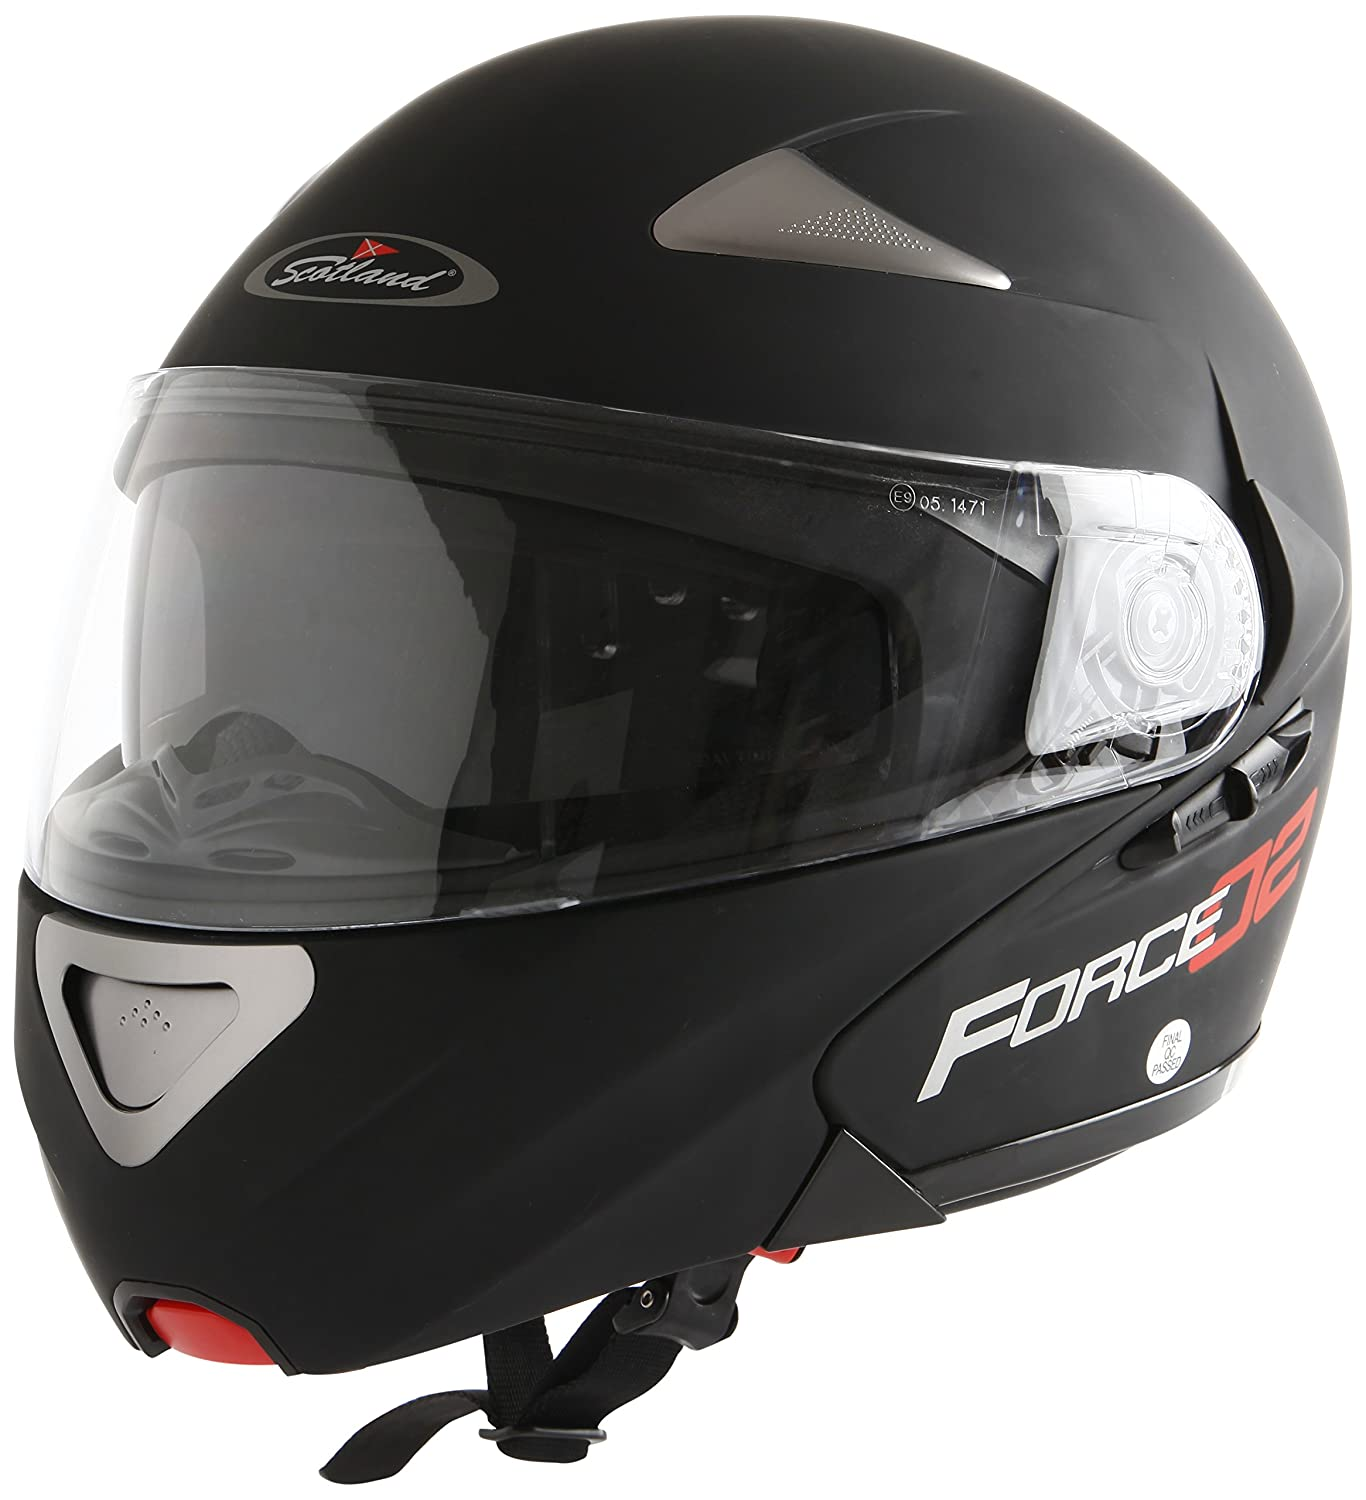 Negro Mate L 59-60 Scotland Casco Modular de Moto Modelo Force 02